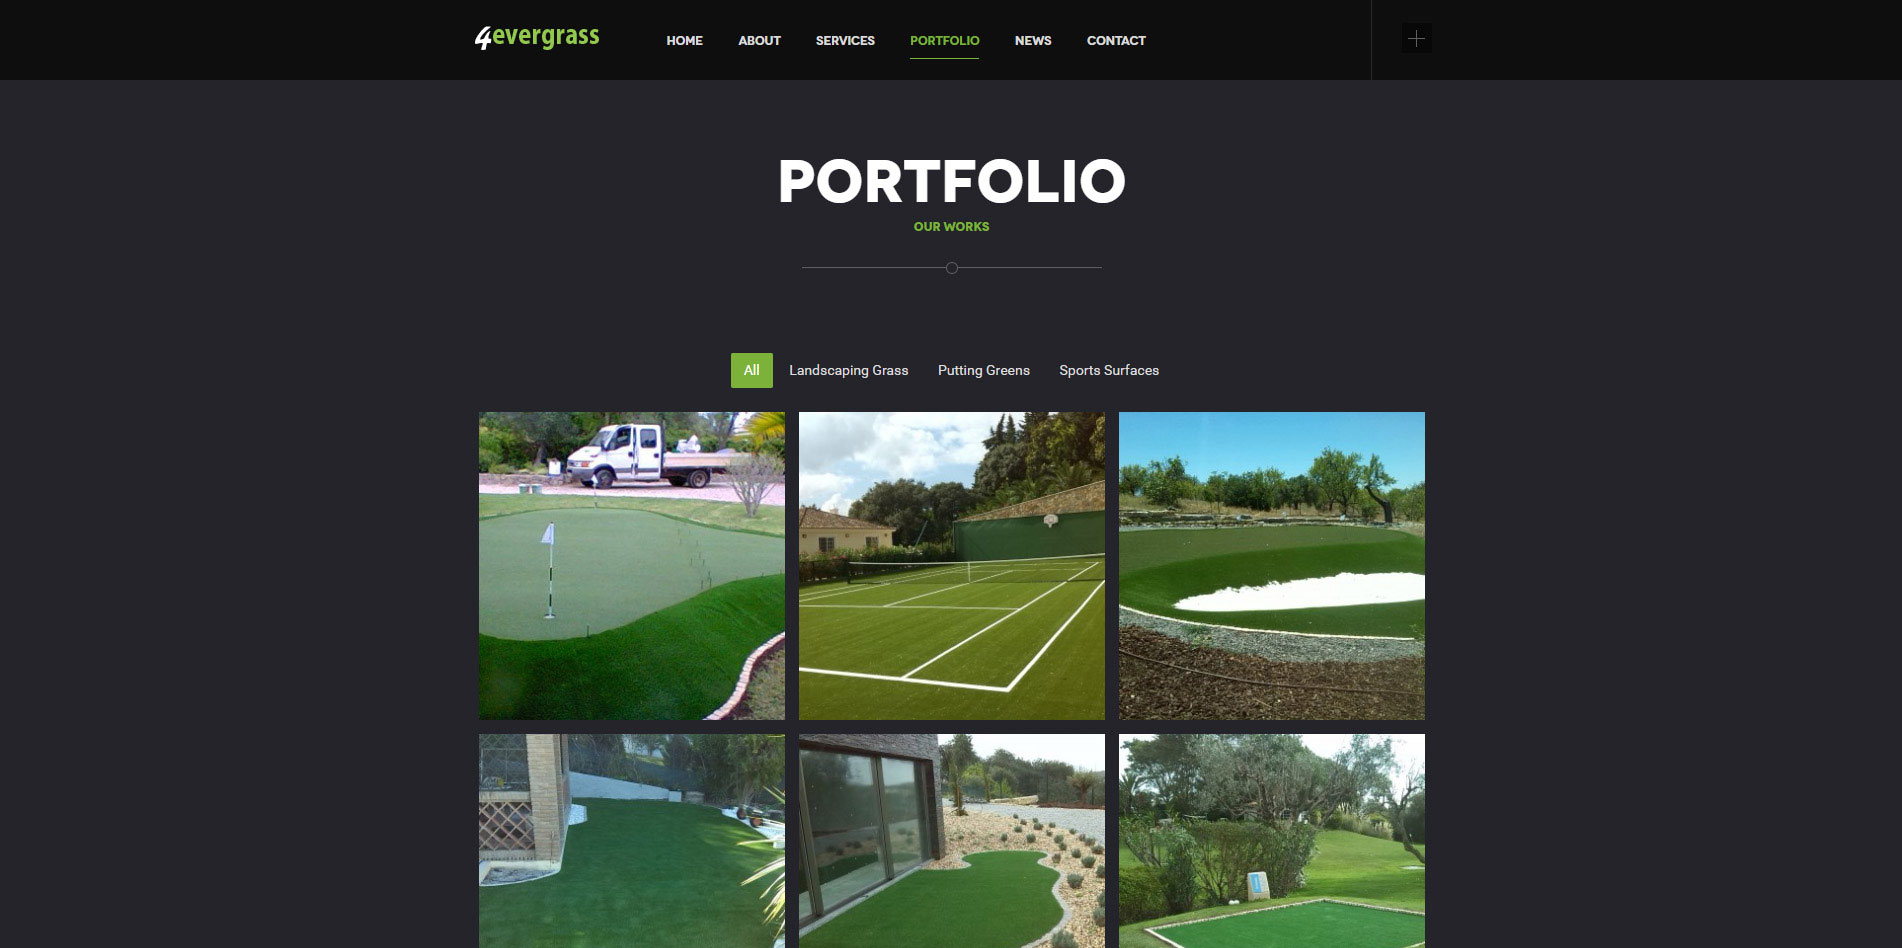 Responsive website design for 4evergrass company, based in Algarve, Portugal. Contact page responsive design.